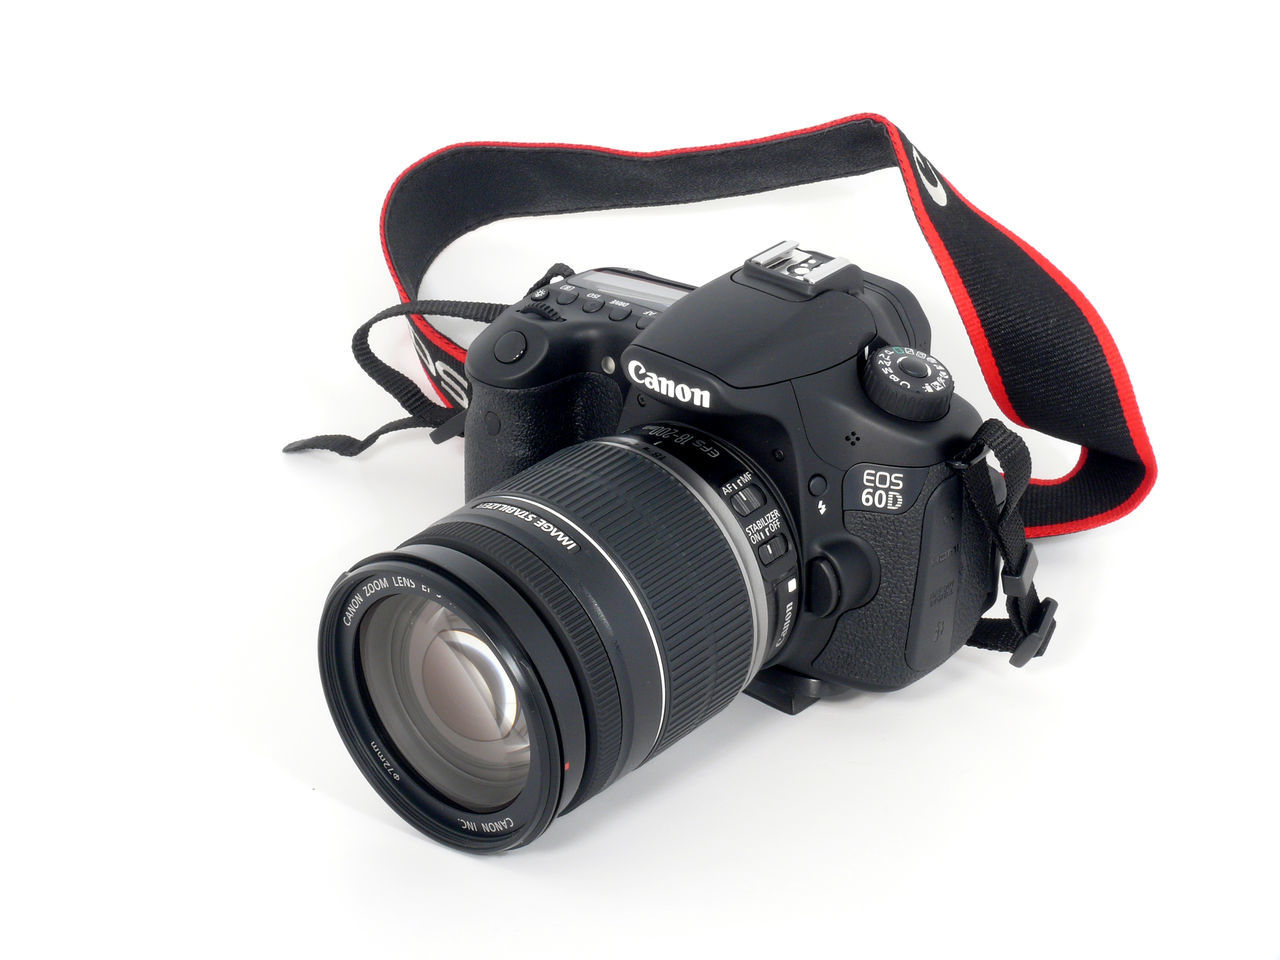 Black Color Camera - Photographic Equipment Canon Canon 60d Canon Eos  Canon Slr Canon60d Close-up Digital Camera Digital Single-lens Reflex Camera Digitalcamera Lens - Eye Modern No People Photography Themes SLR Camera Studio Shot Technology White Background